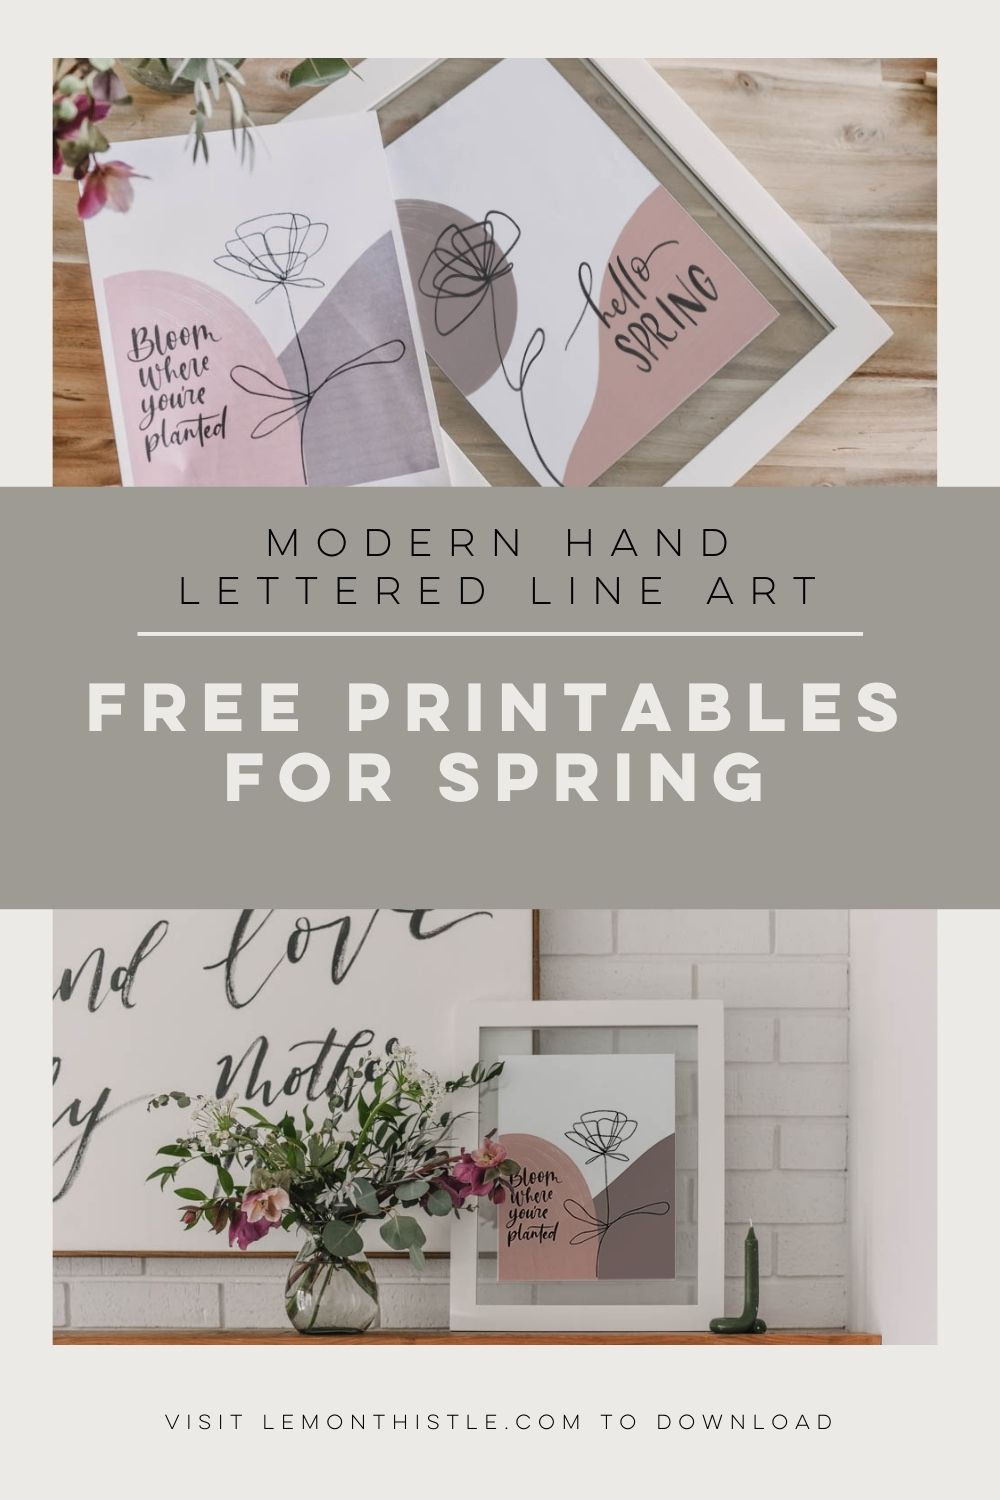 2 Free printables for spring